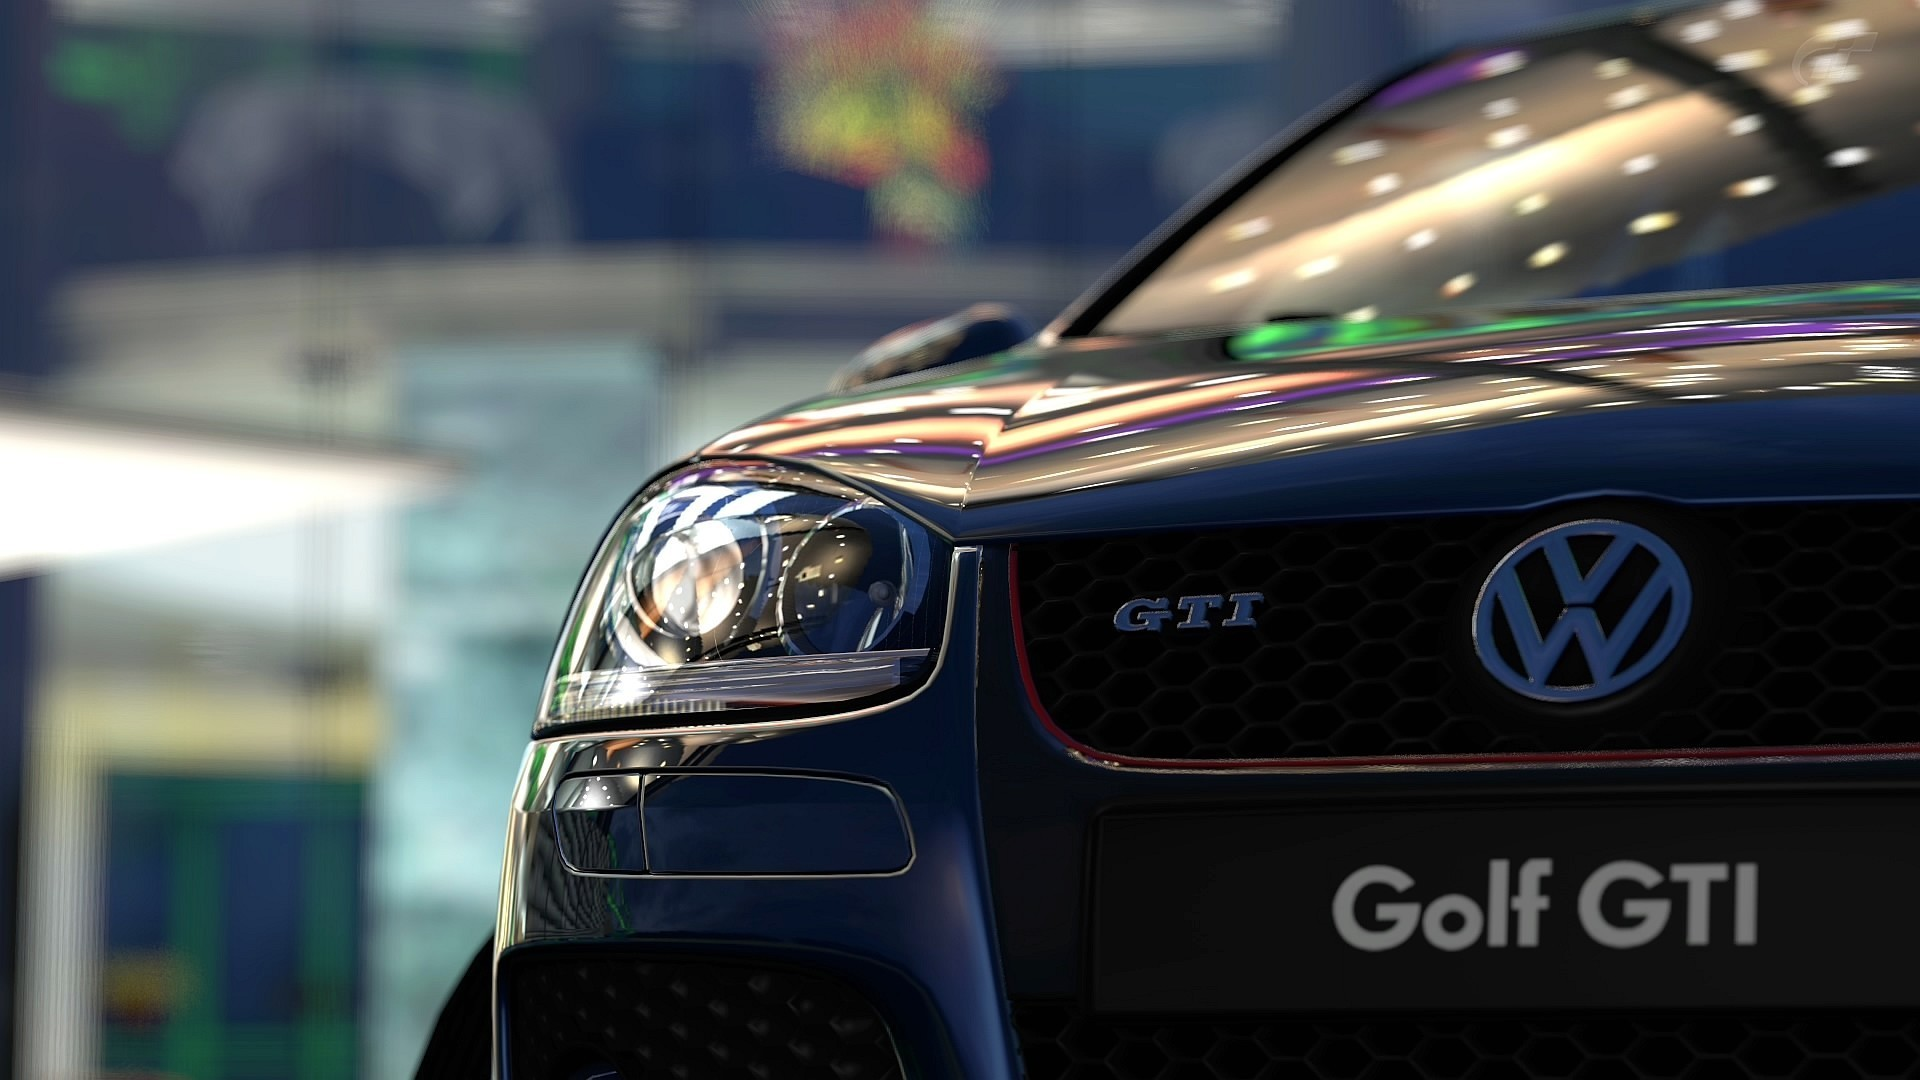 Res: 1920x1080,  Golf GTI Wallpaper Background